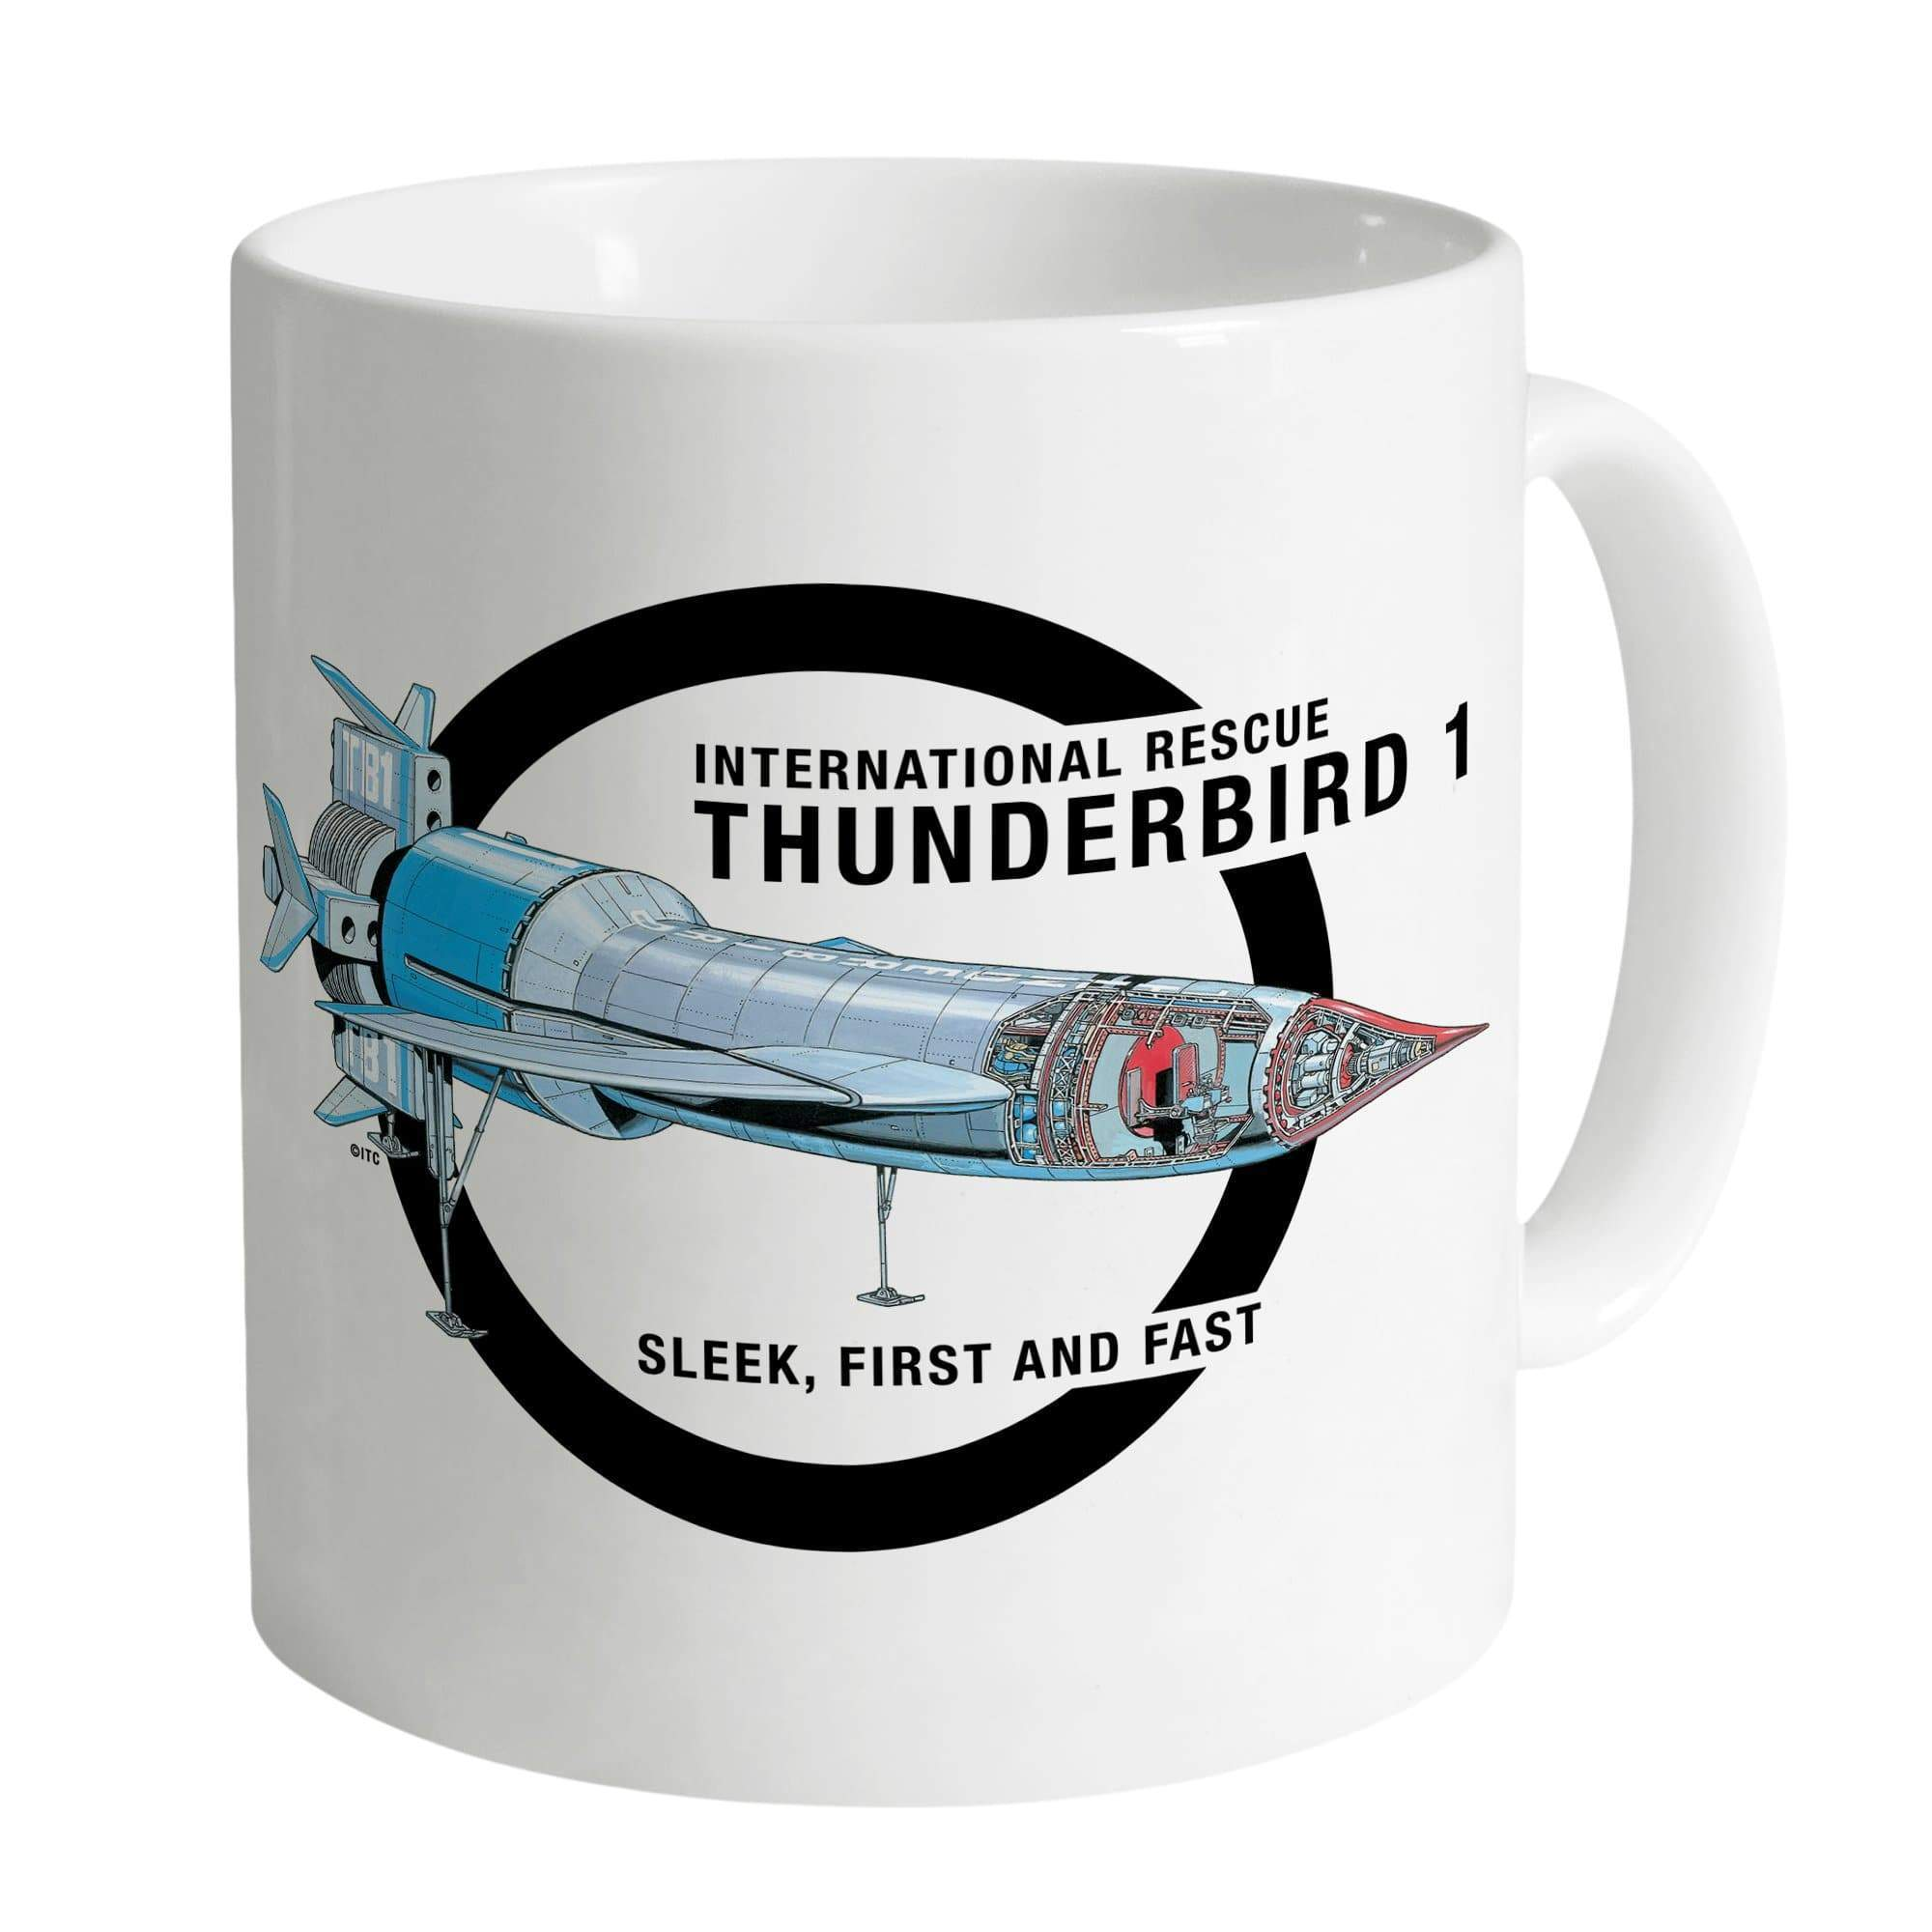 Thunderbird 1 Cutaway White Mug [Official & Exclusive] - The Gerry Anderson Store